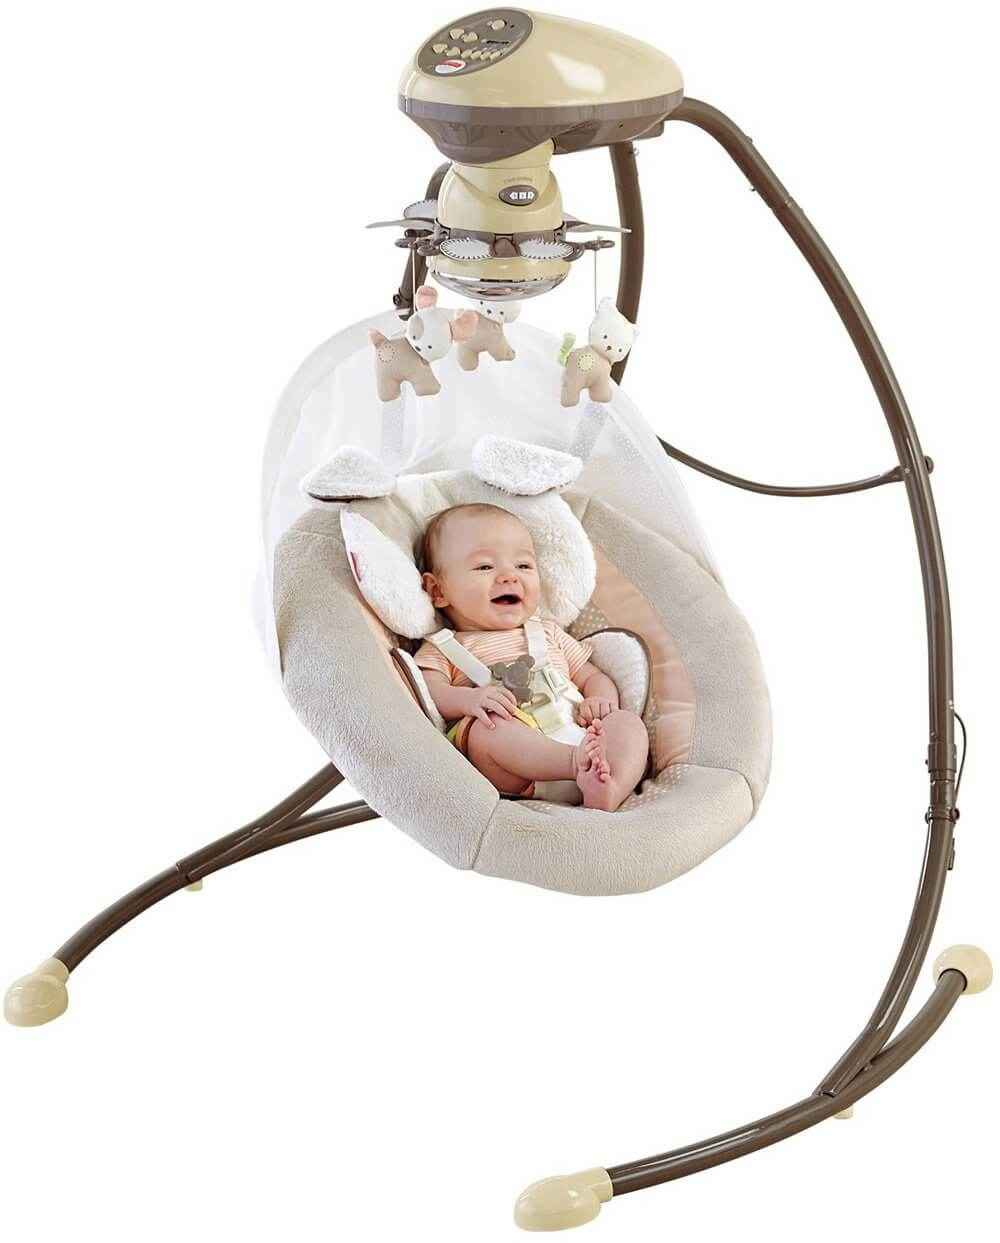 The Best Baby Swings For 2017 2018 Baby Ideas